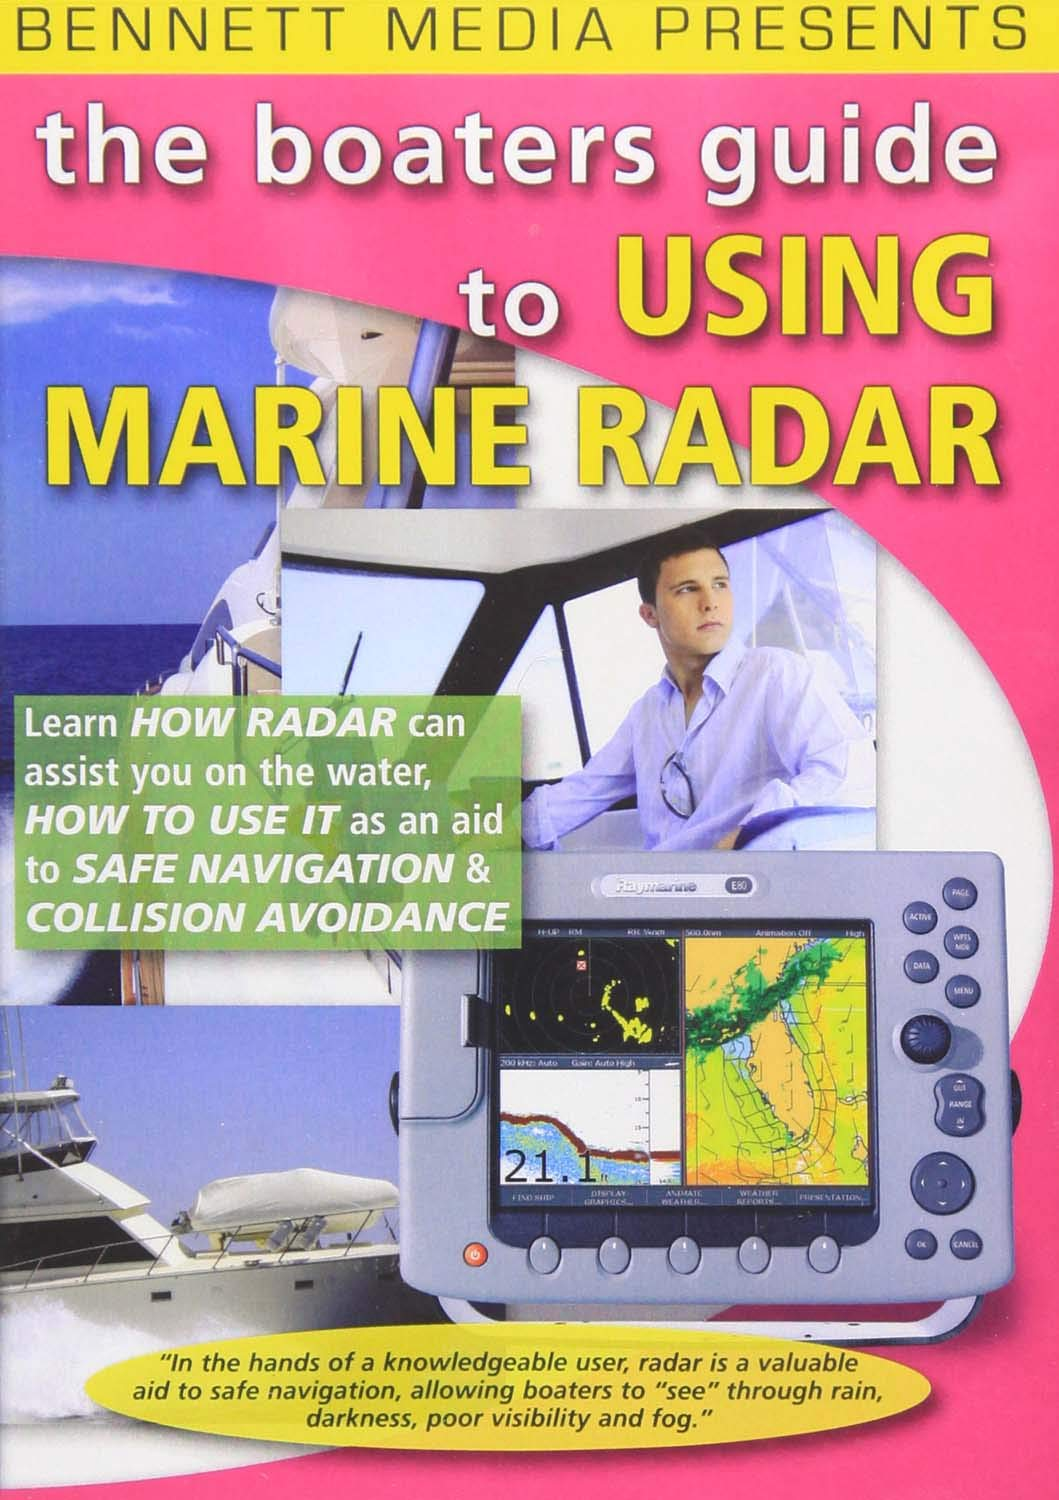 The Boaters Guide to Using Marine Radar by Bennett